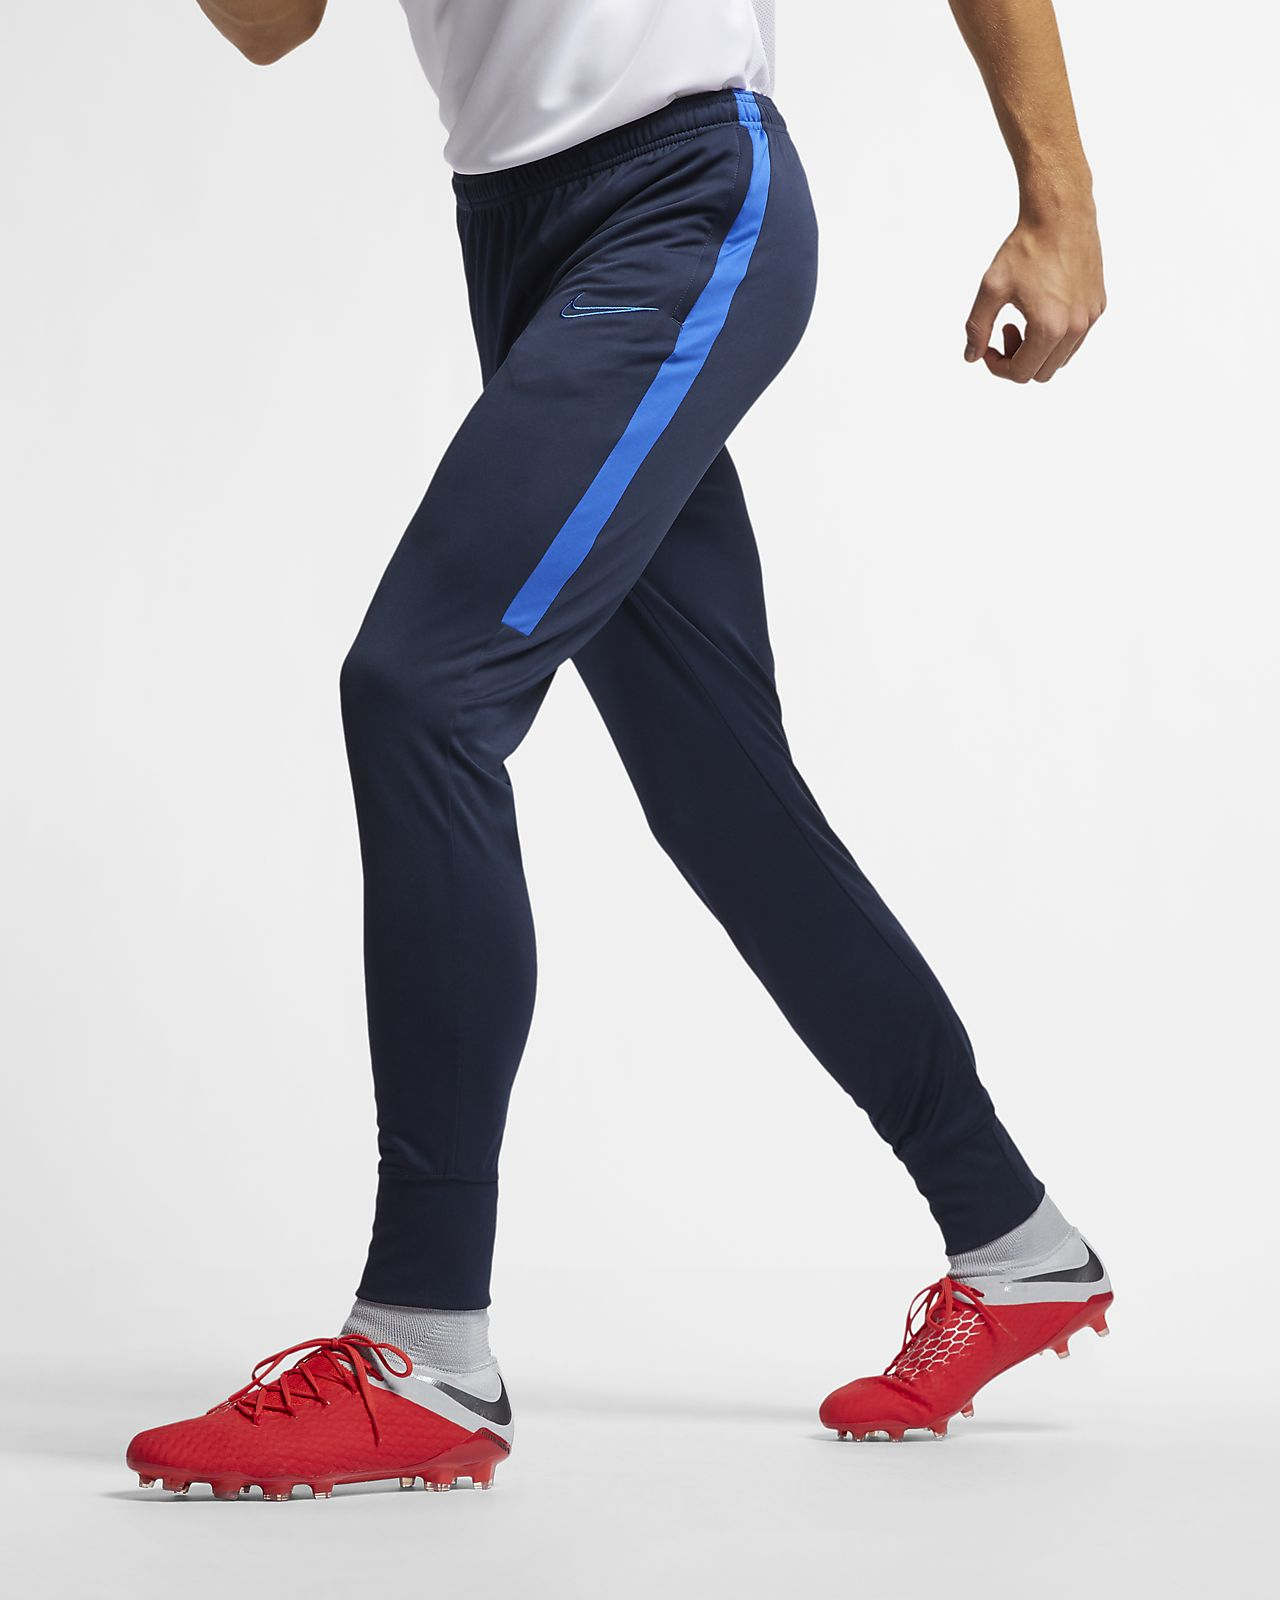 cheaper 9ef4a a3aef Men s Football Pants. Nike Dri-FIT Academy